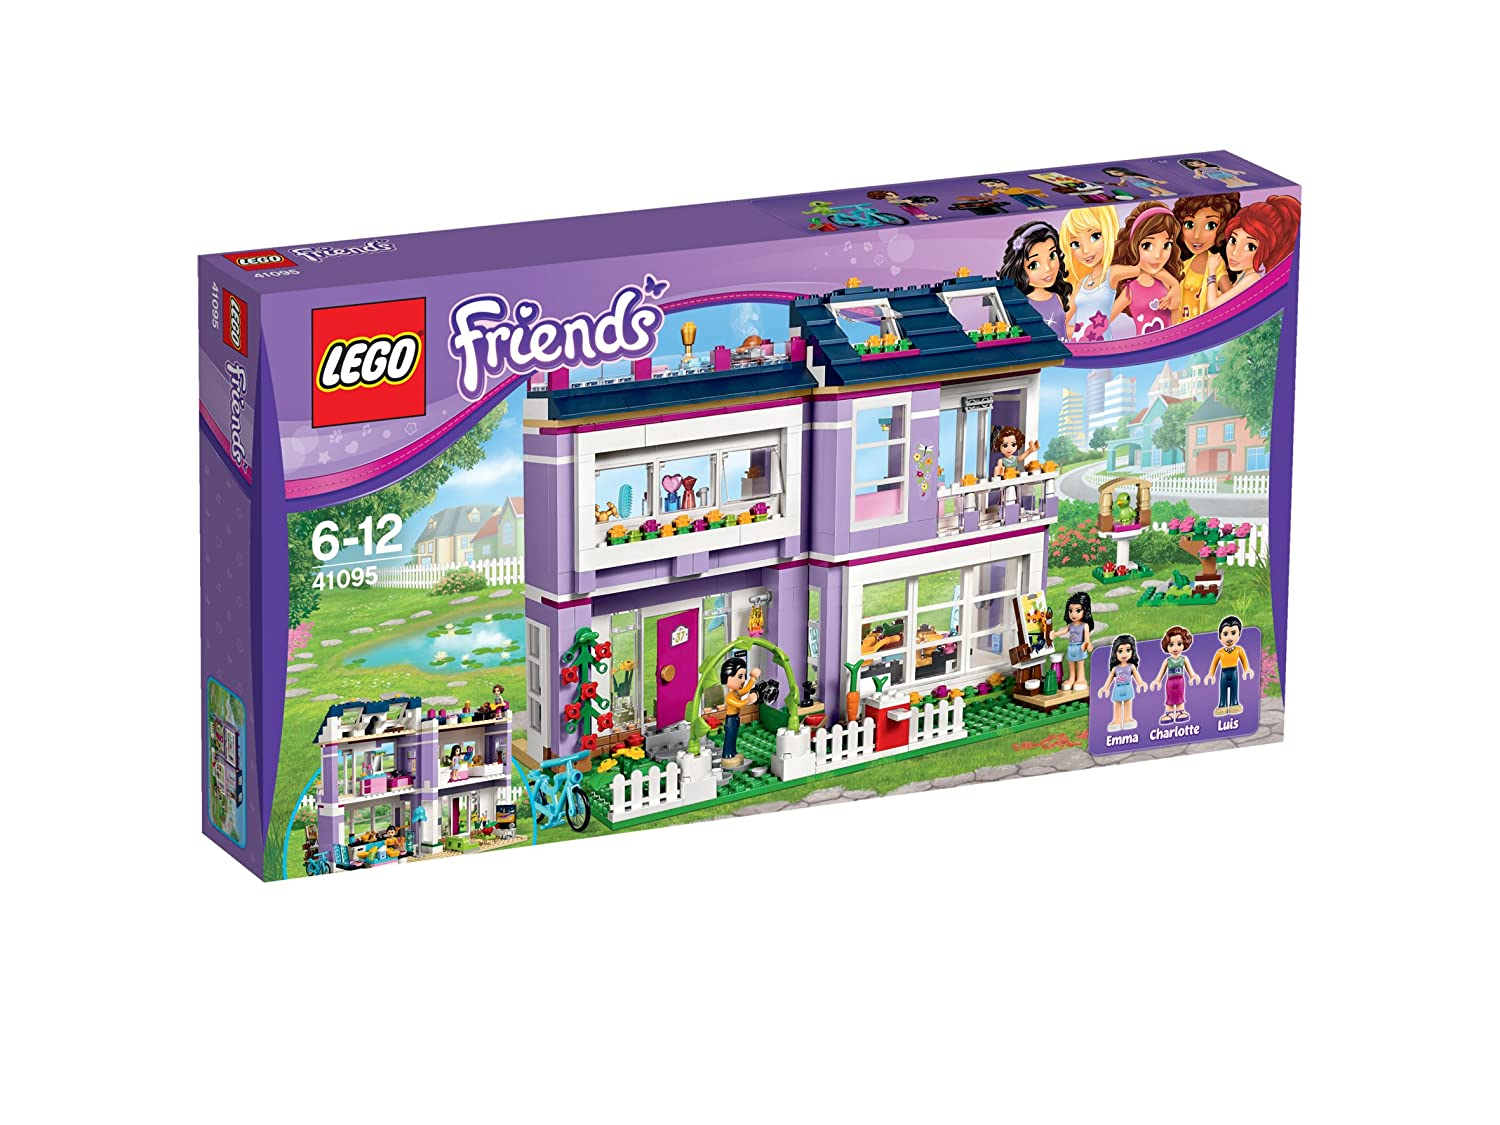 Amazon.com: LEGO Friends Casa Emma diseño de la 41 095: Toys ...